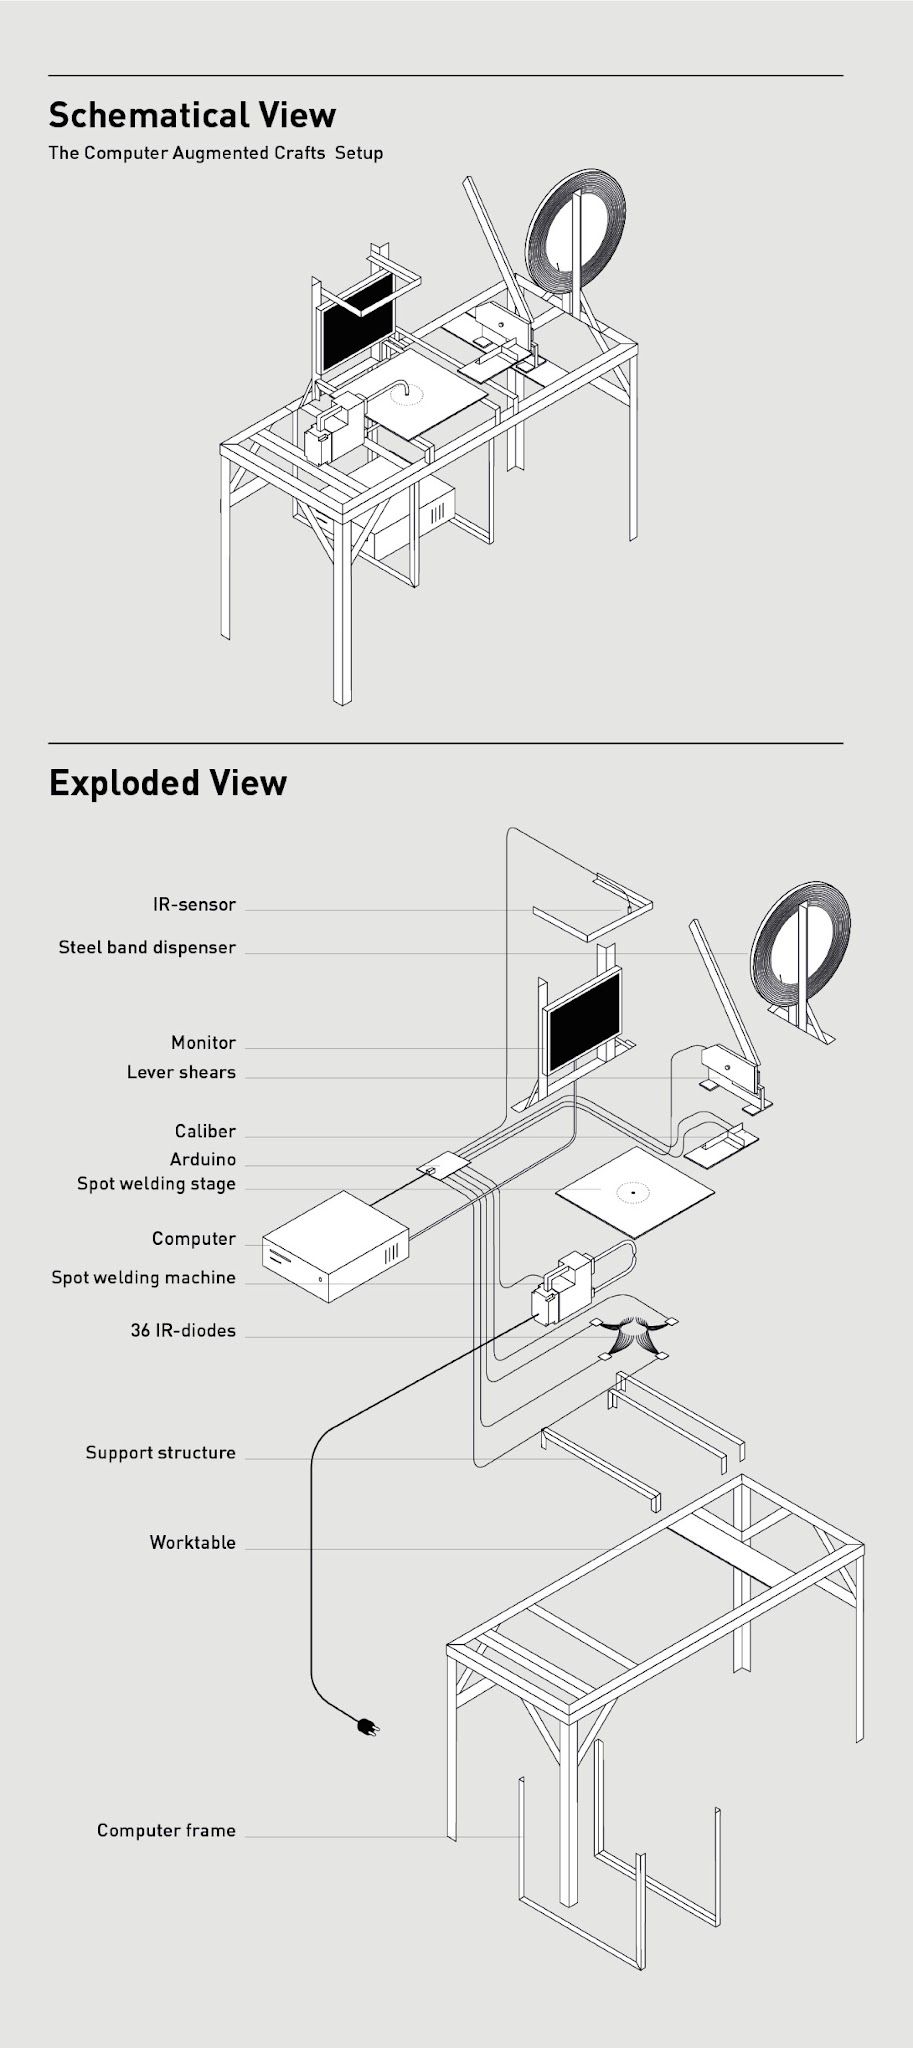 Computer Augmented Crafts By Fiebigc Spot Welding Machine Diagram Licensing